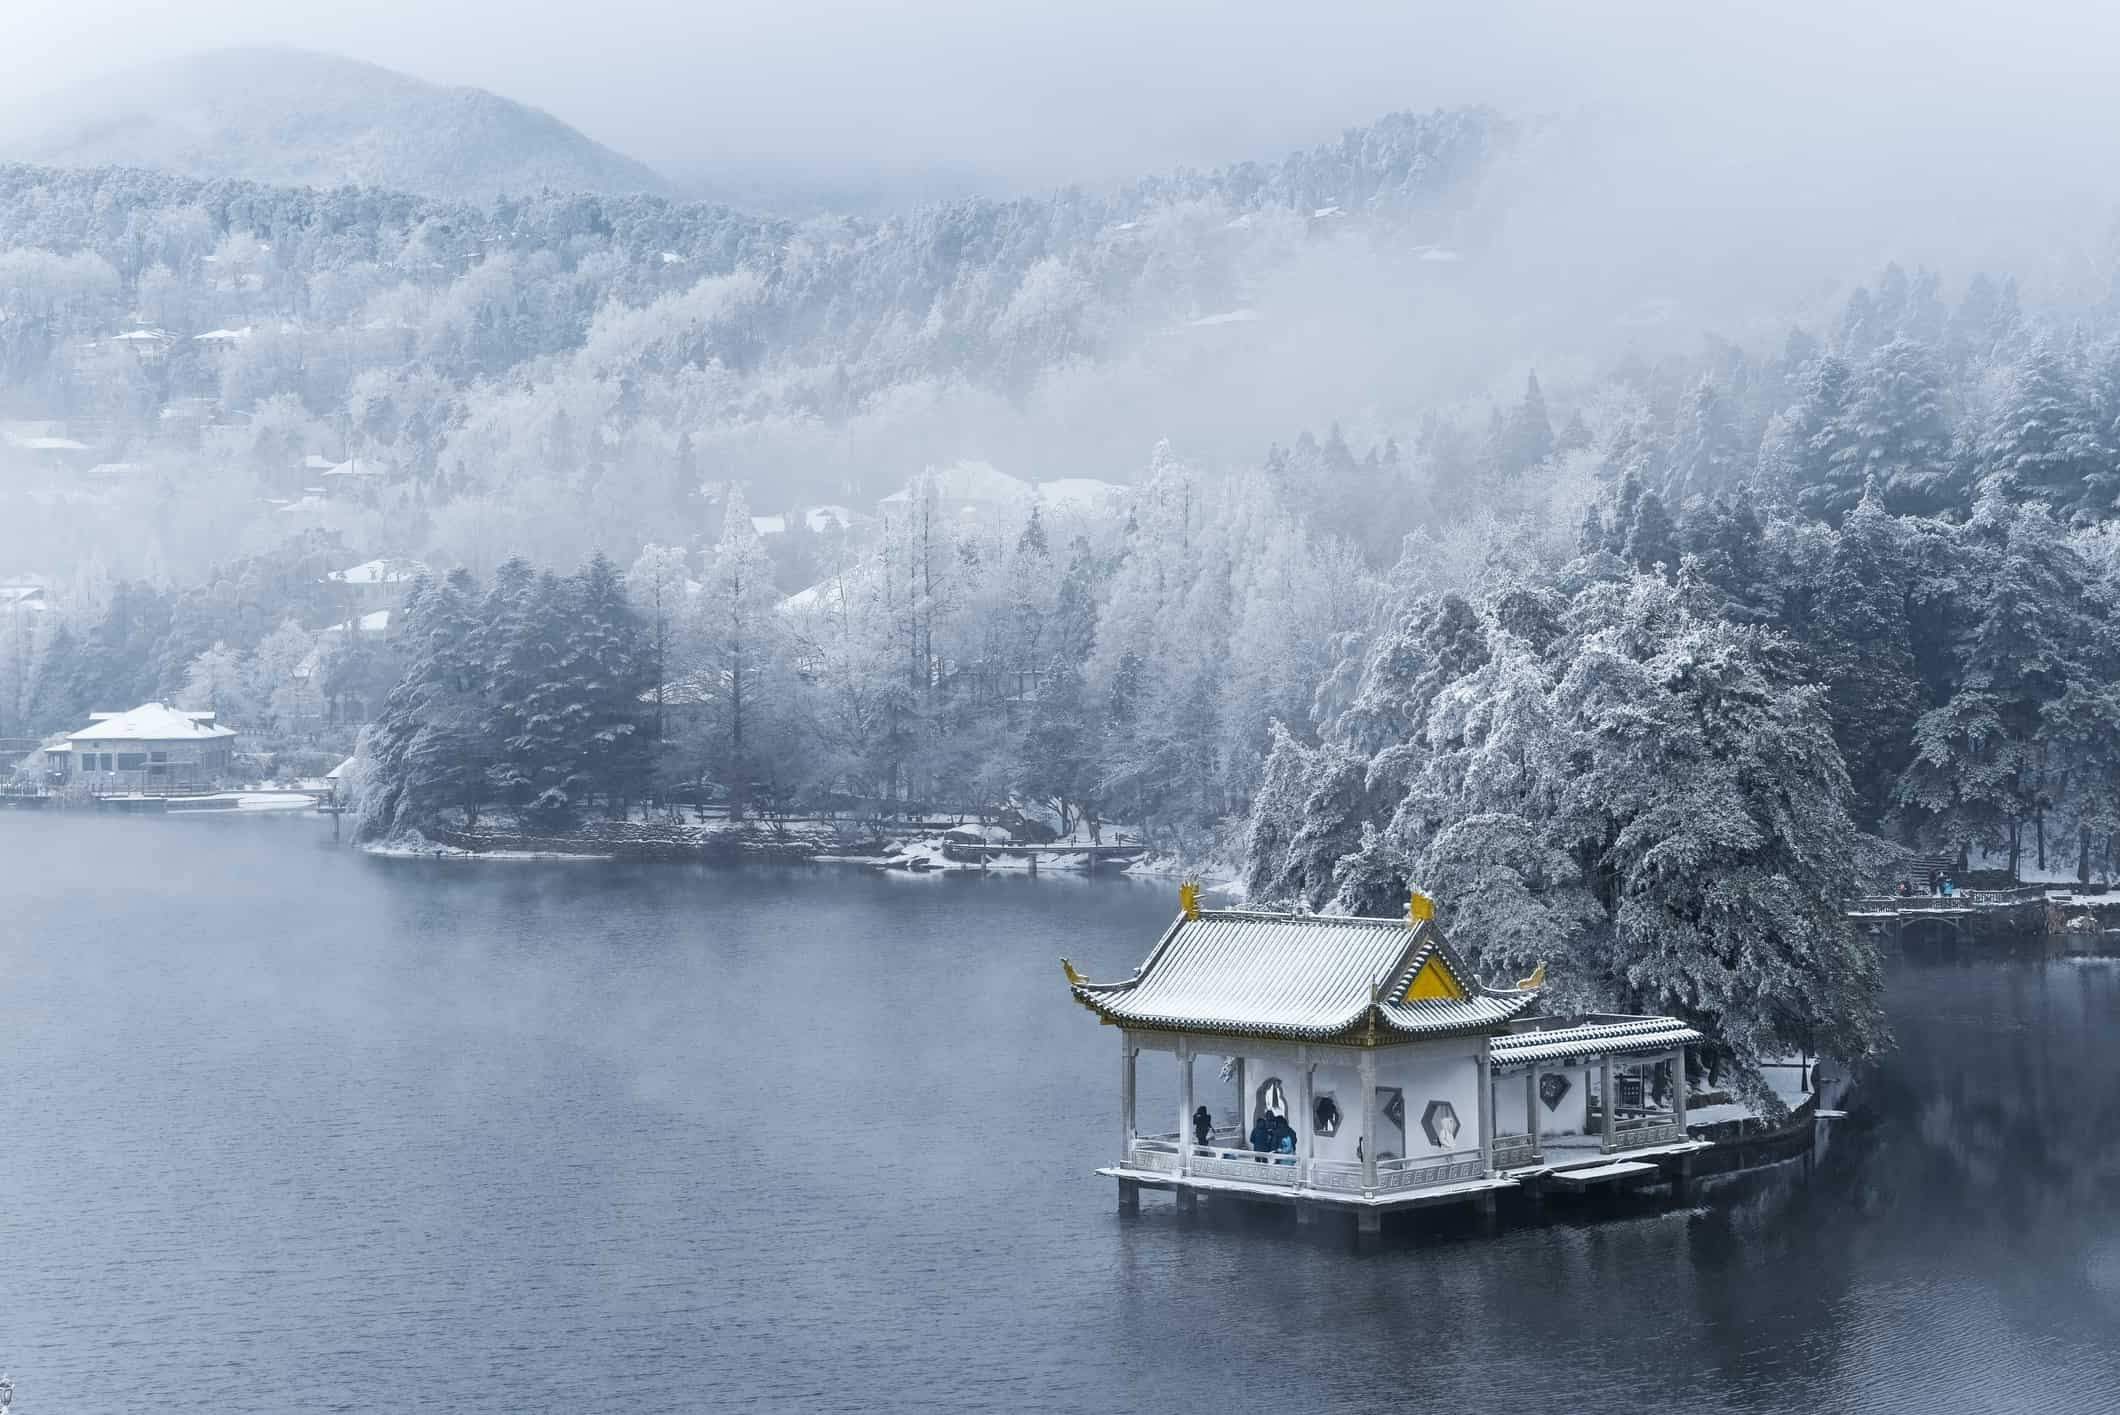 beautiful winter landscape on lushan mountain, a famous tourist destination in China